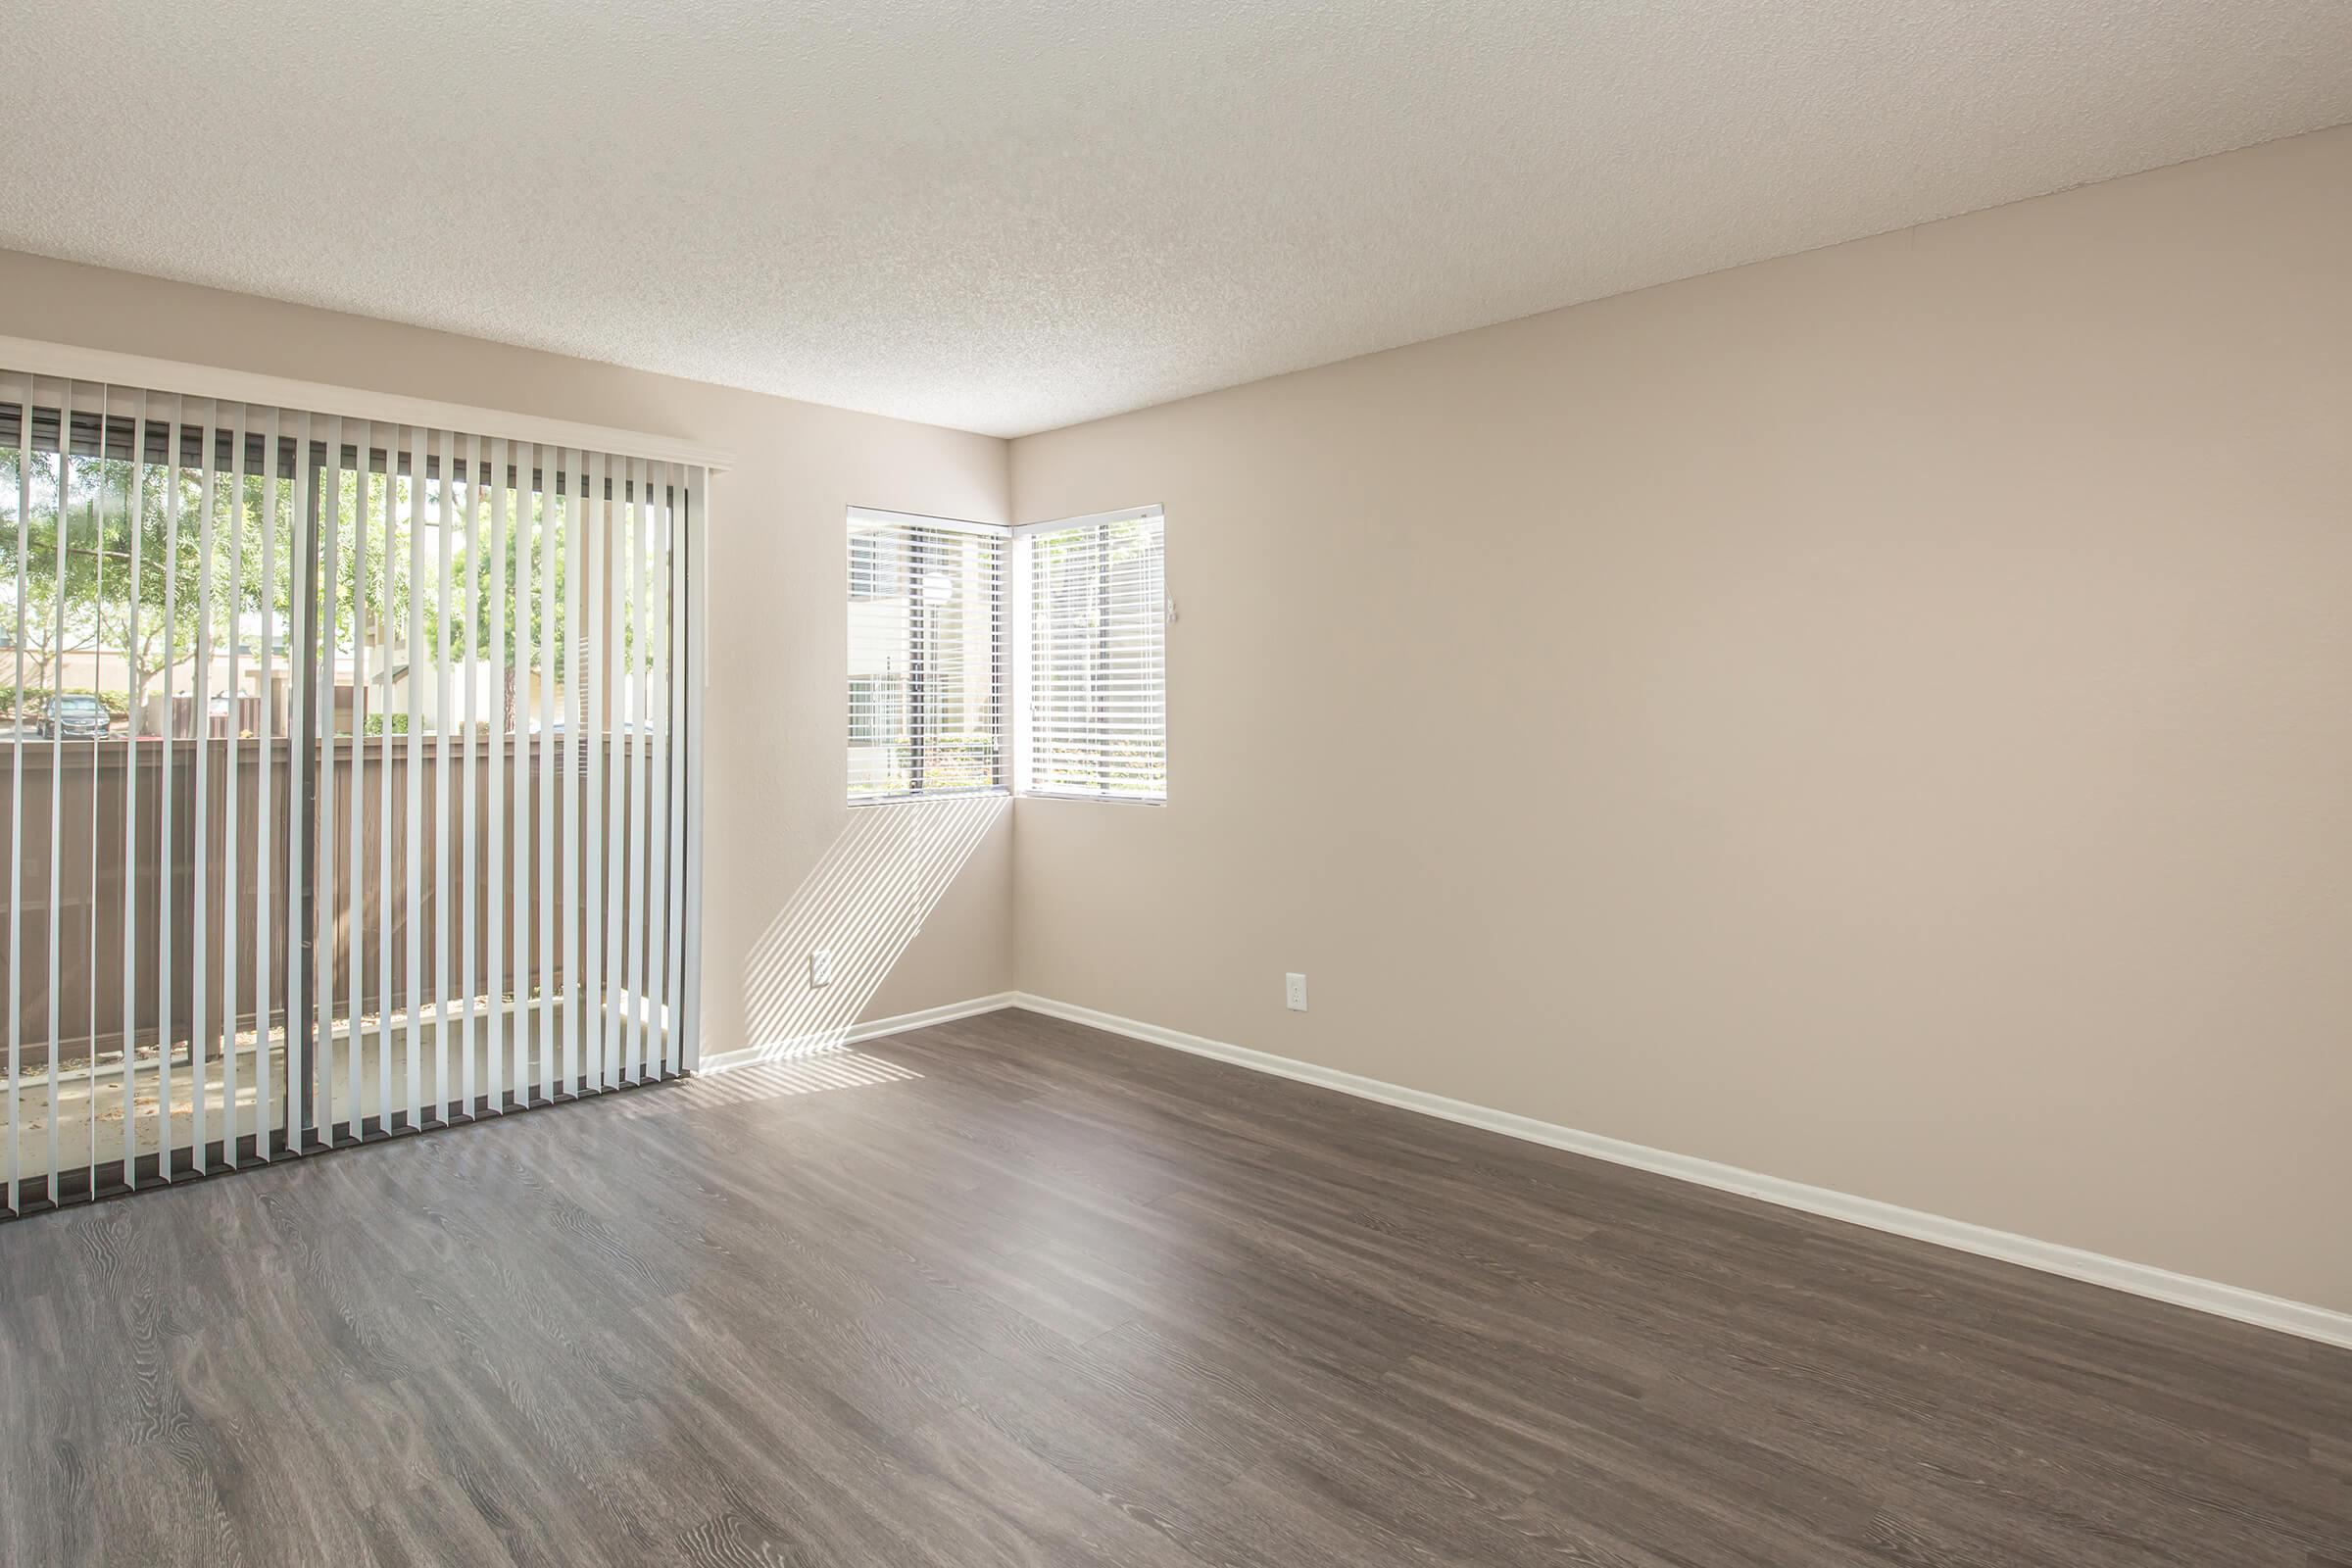 Unfurnished living room with glass sliding doors to patio